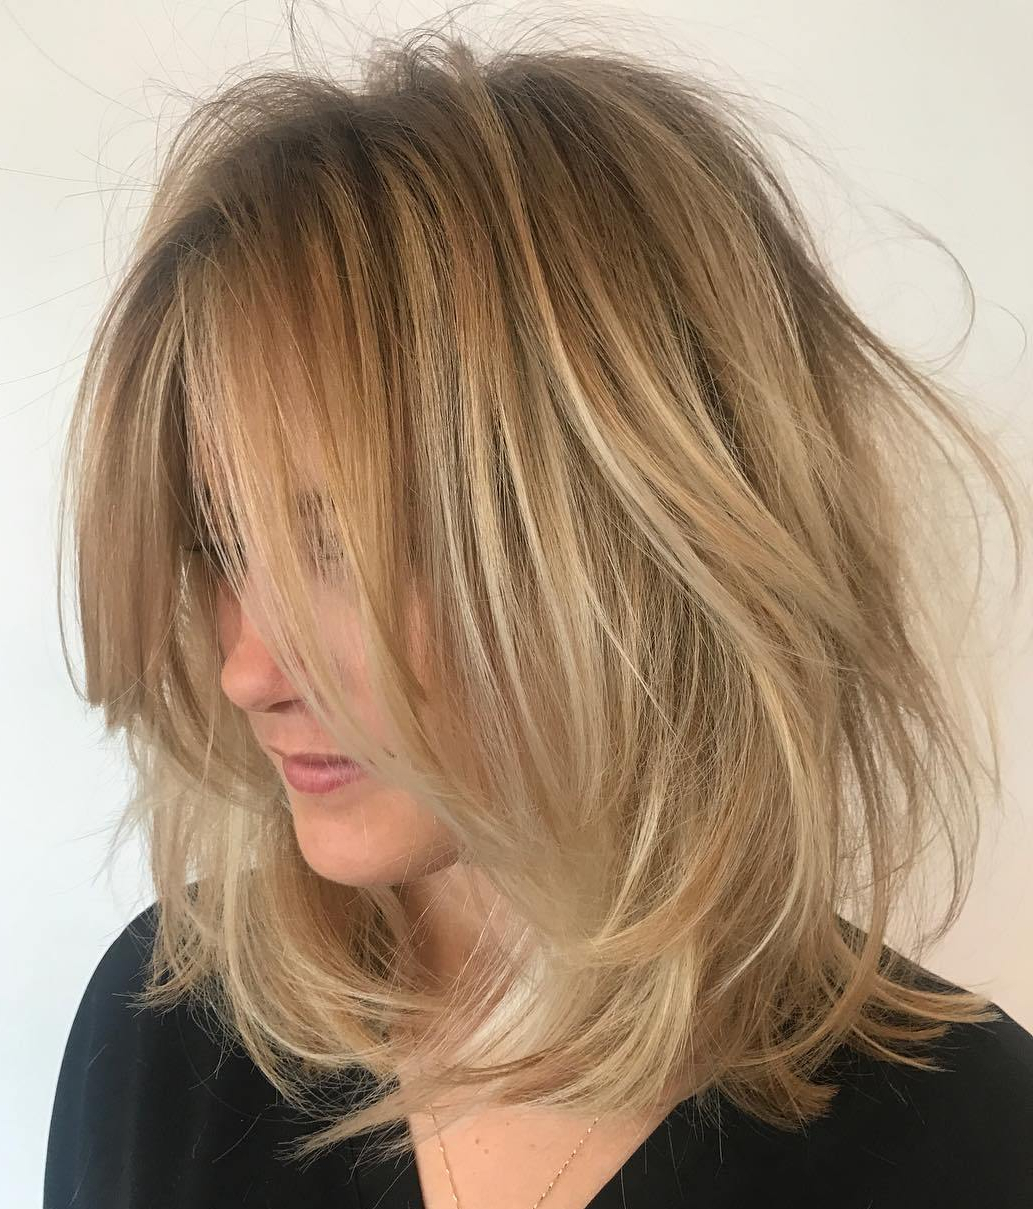 70 Devastatingly Cool Haircuts For Thin Hair Inside Most Recent Long Tousled Voluminous Hairstyles (View 4 of 20)